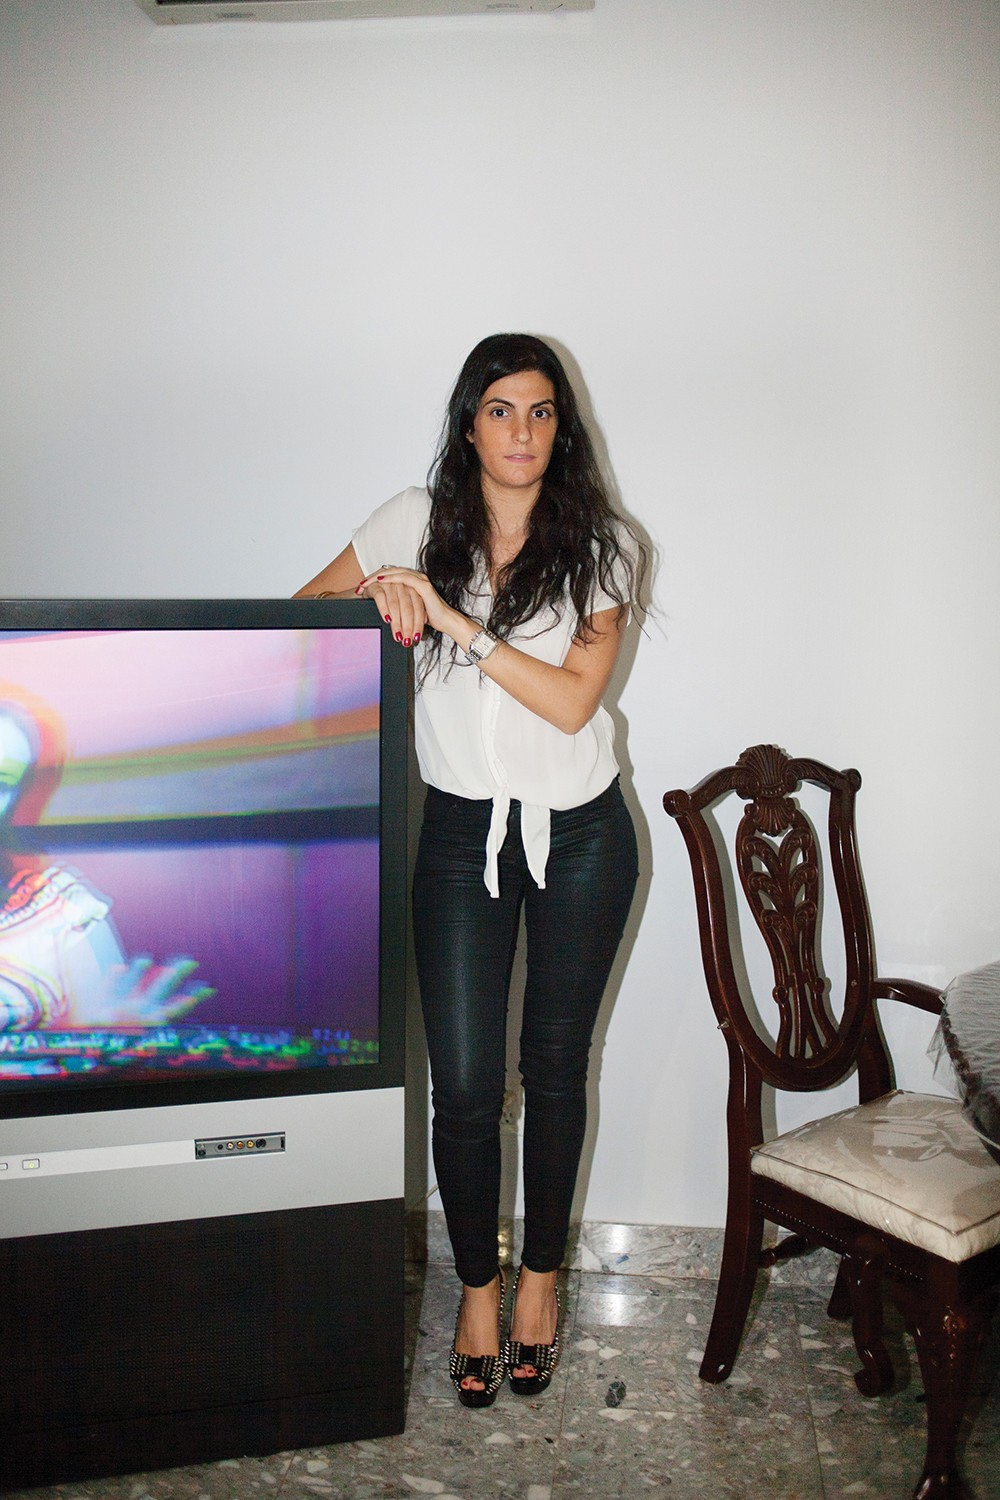 Linda poses next to the family TV, which played Arabic programing throughout the entire shoot.